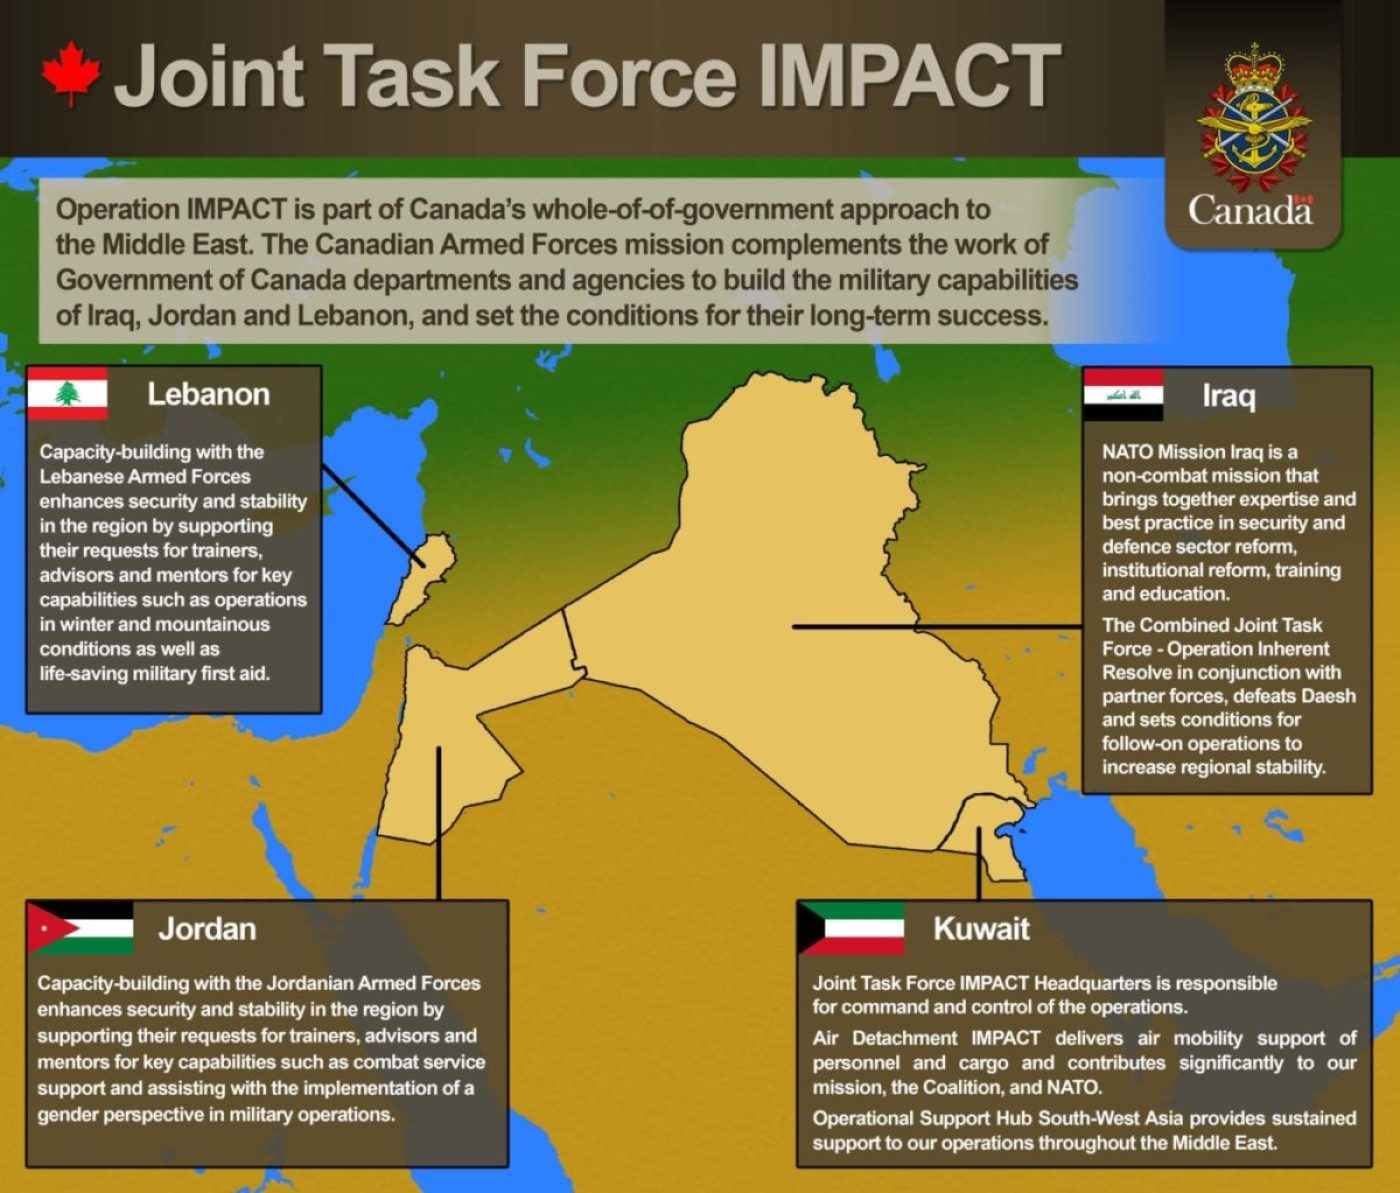 Where Joint Task Force IMPACT is deployed (Canadian Armed Forces image)